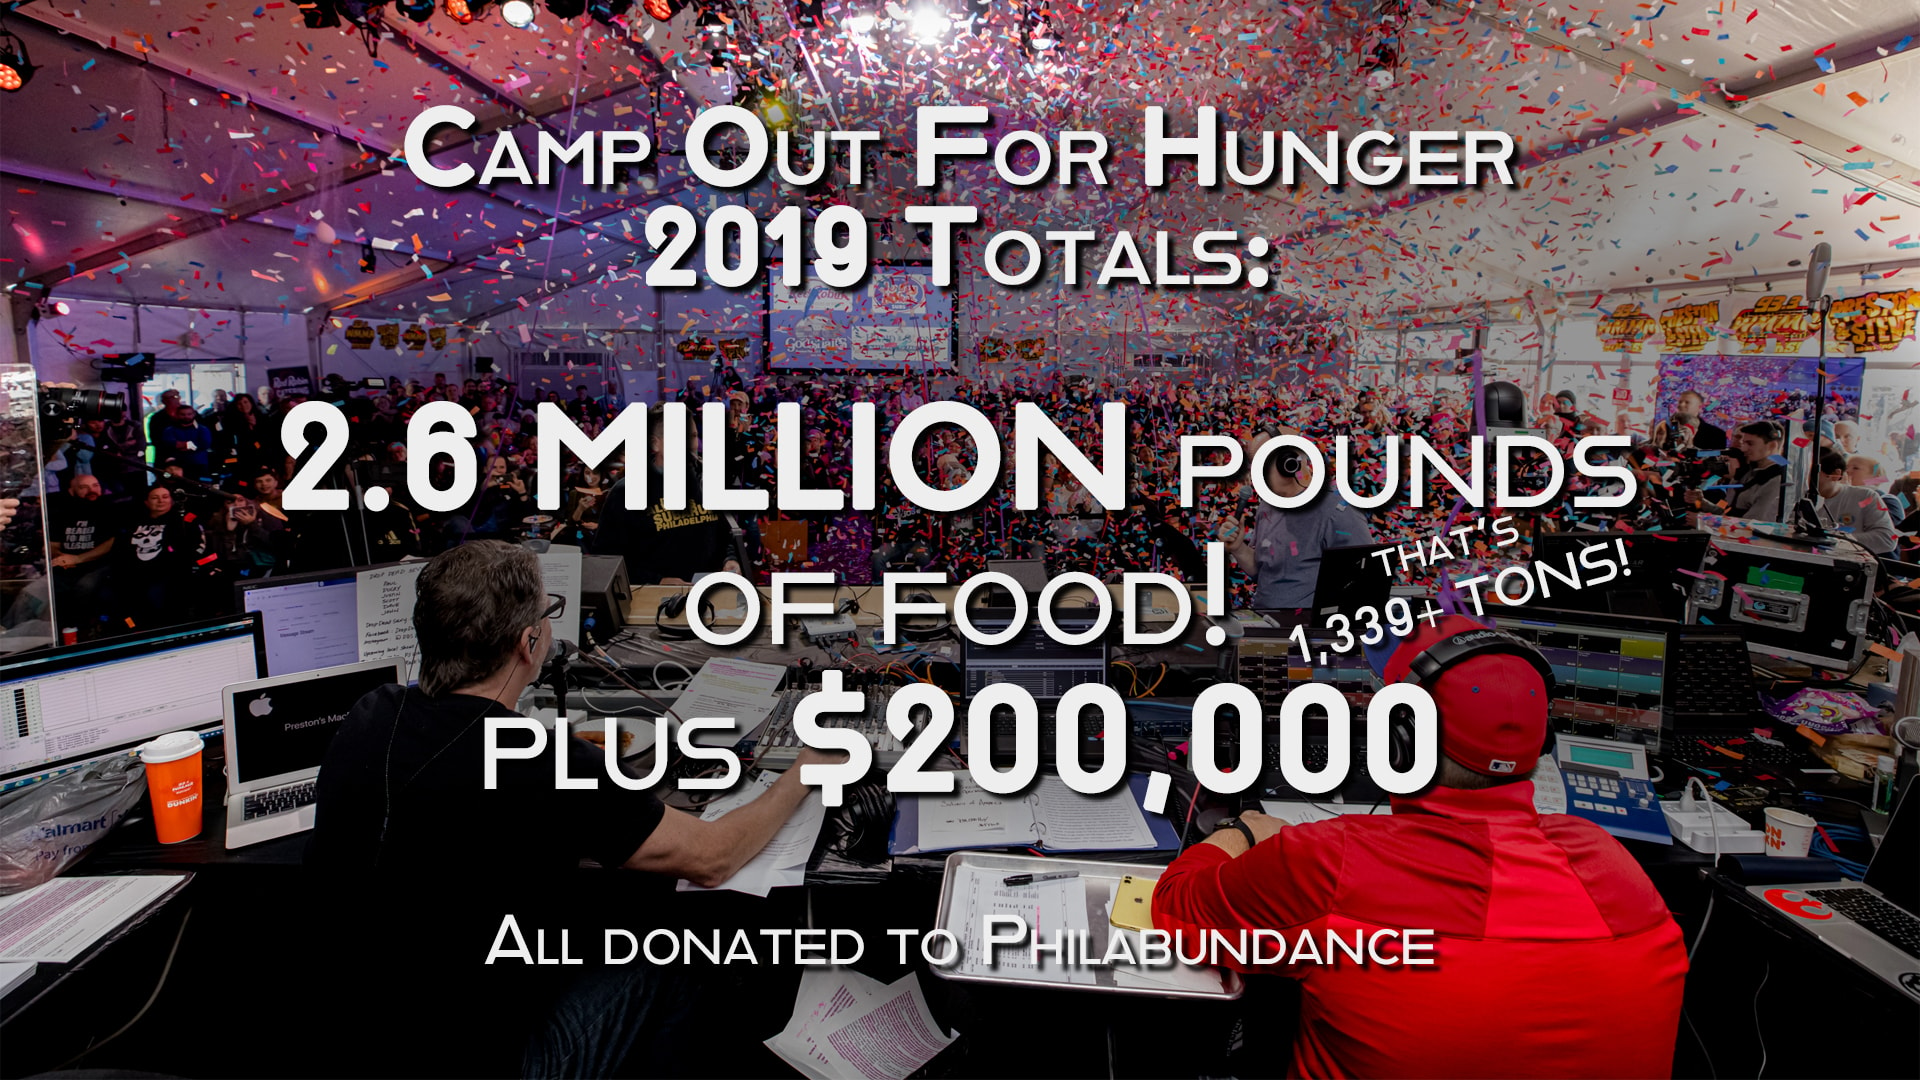 The totals are in! Camp Out for Hunger 2019 collected…